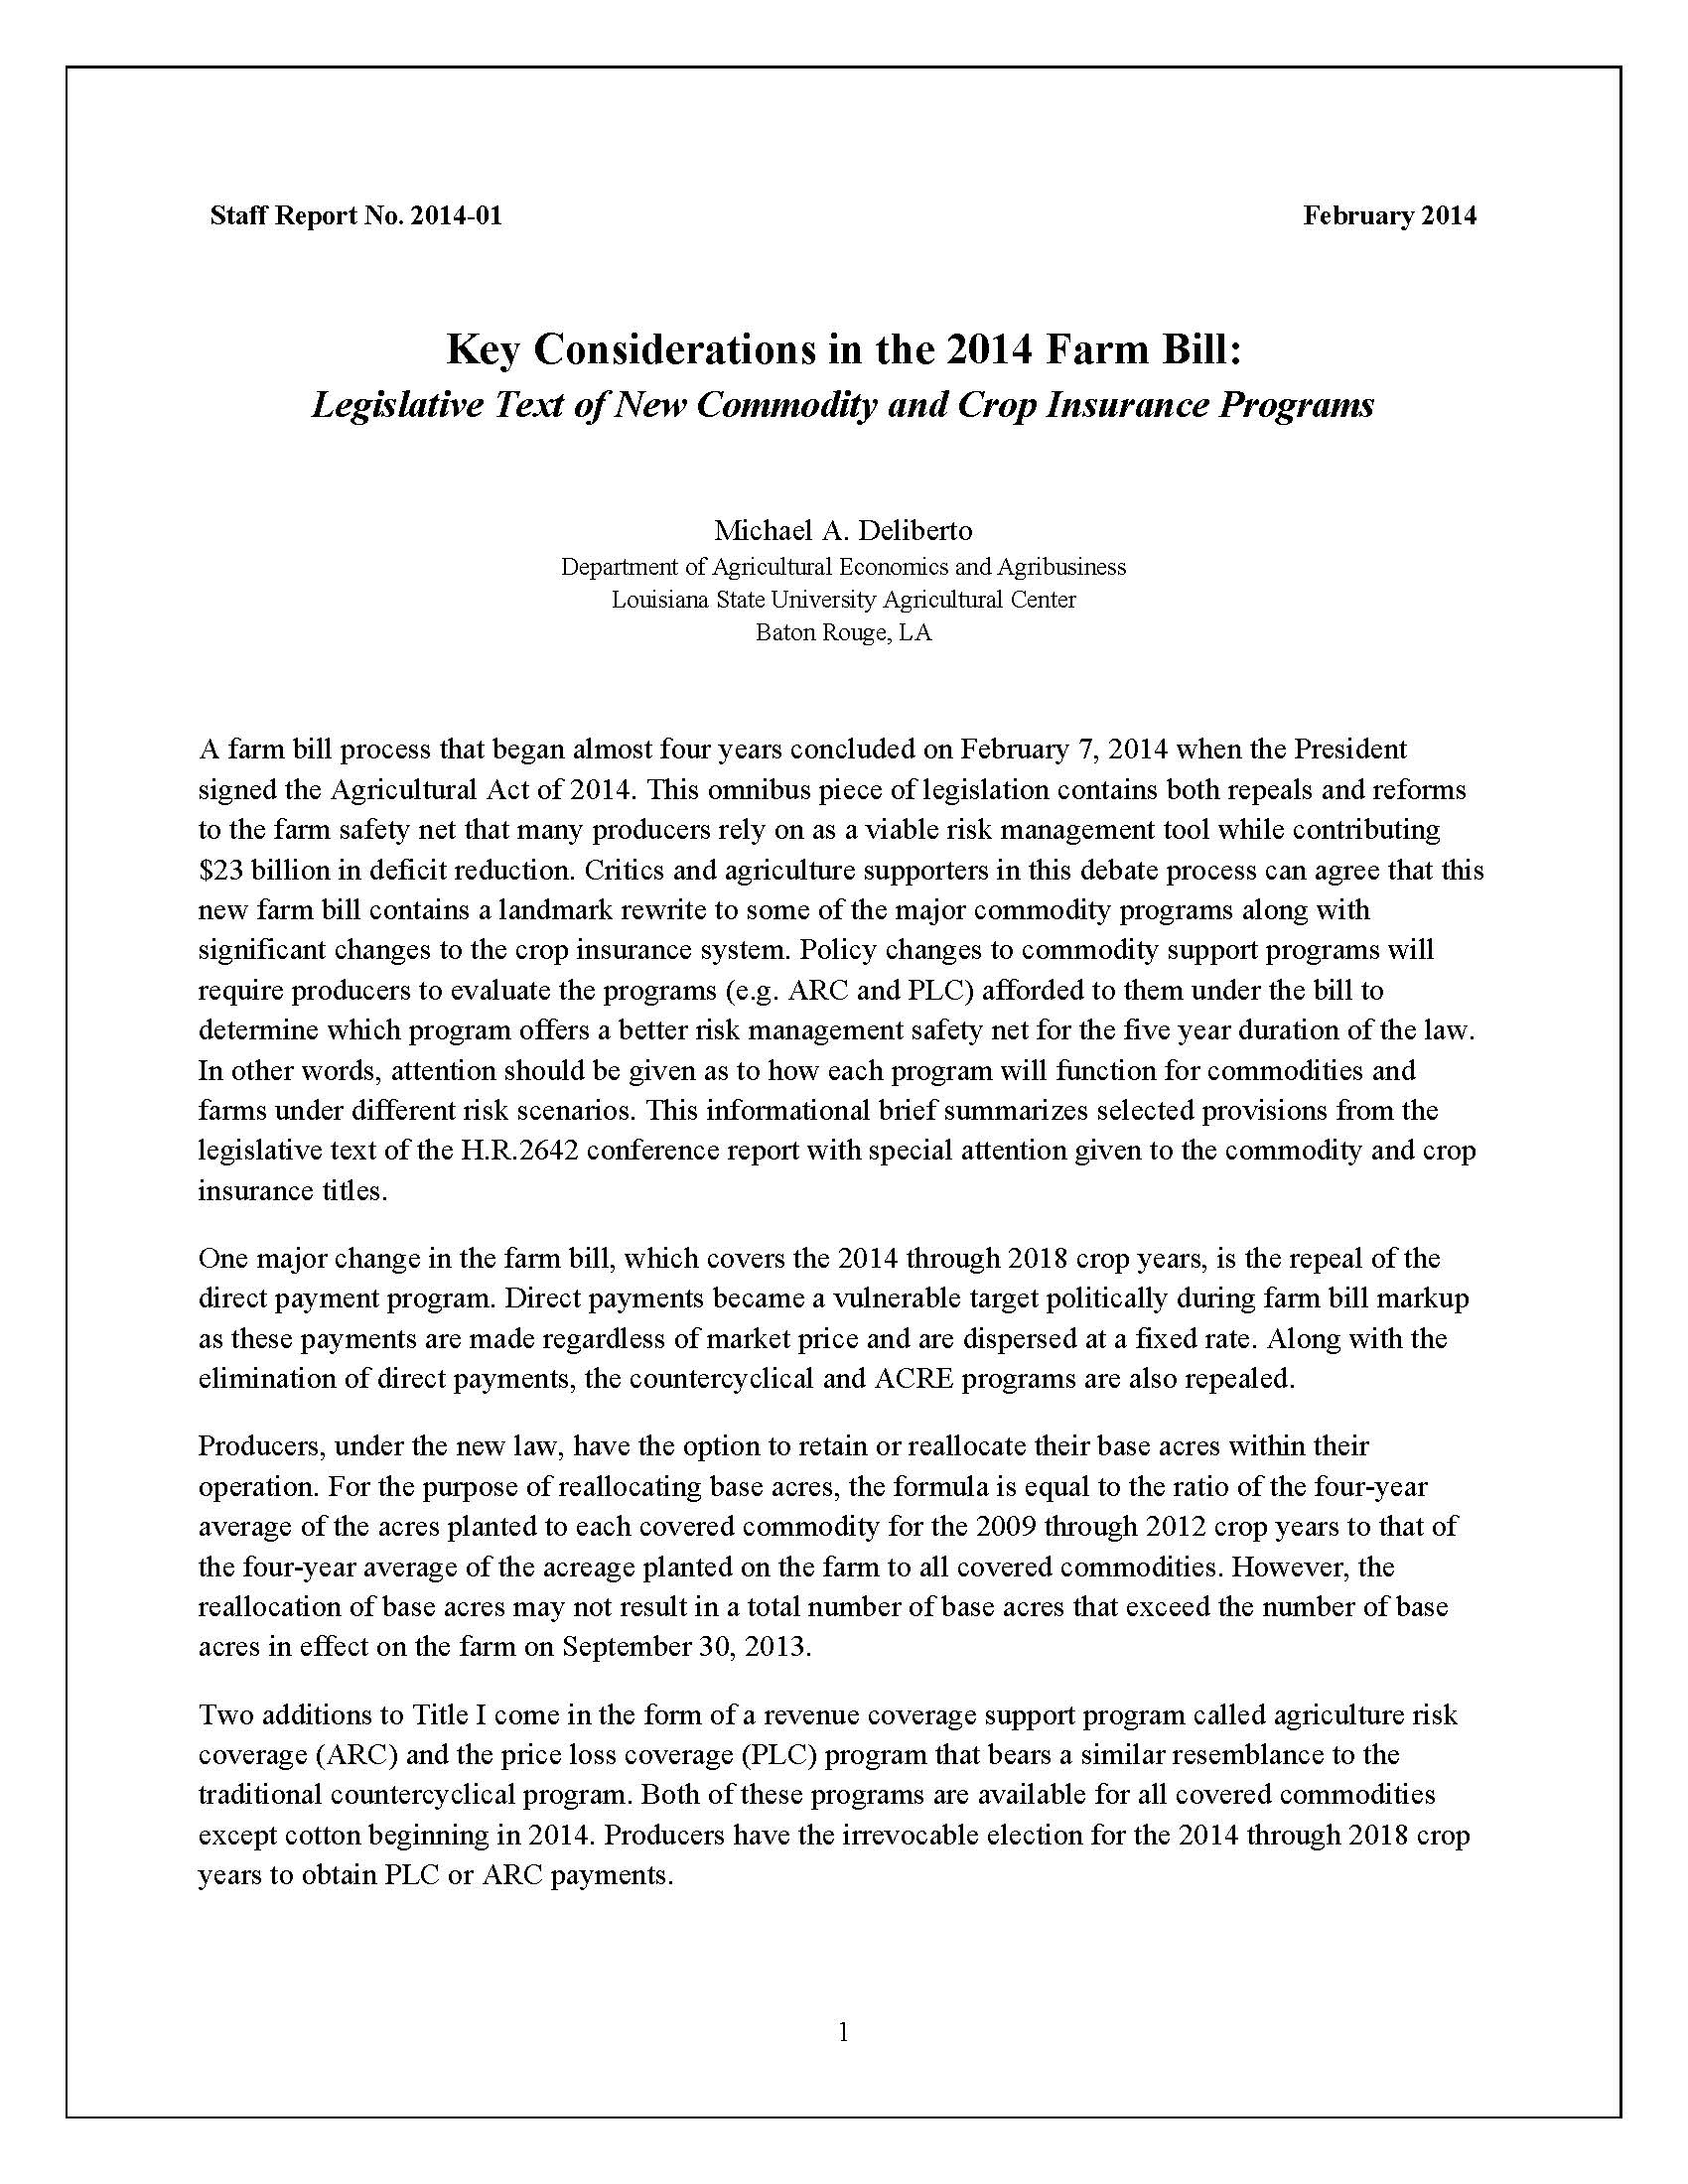 Key Considerations in the 2014 Farm Bill